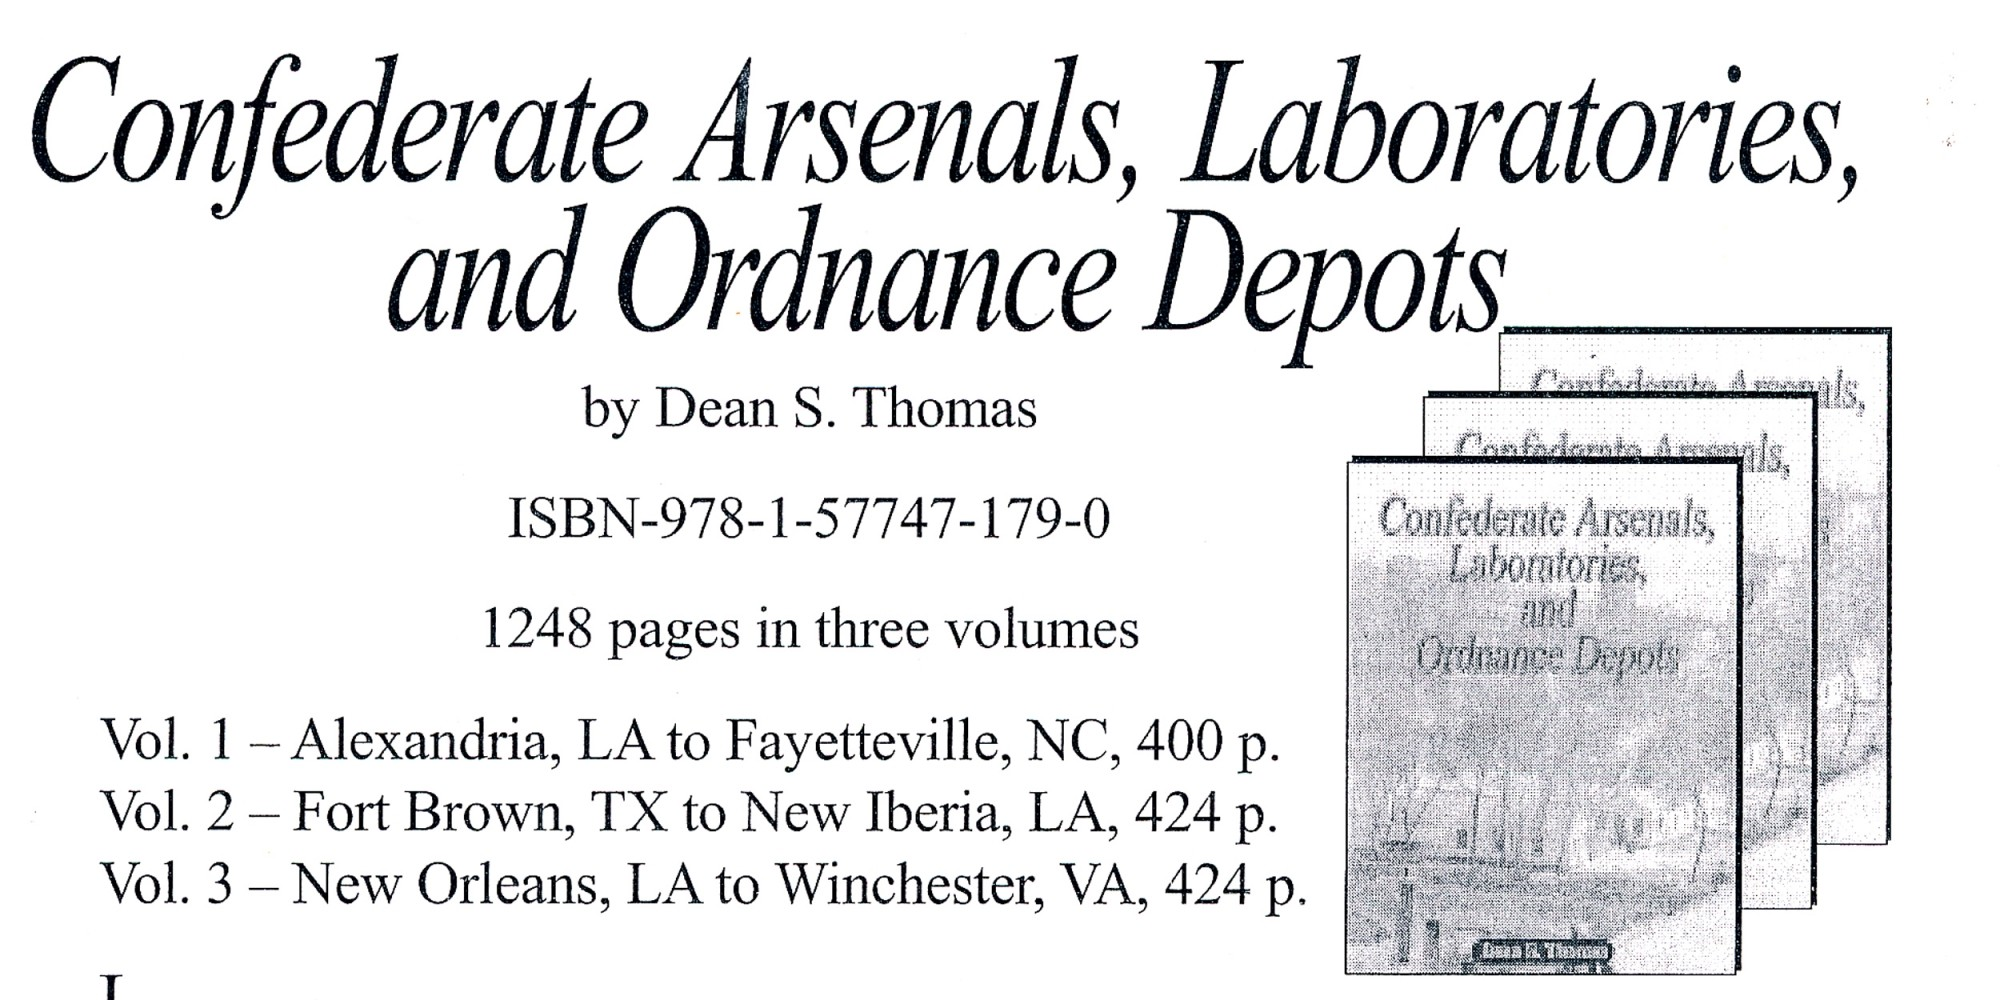 <I>CONFEDERATE ARSENALS, LABORATORIES AND ORDNANCE DEPOTS</I> BY DEAN THOMAS